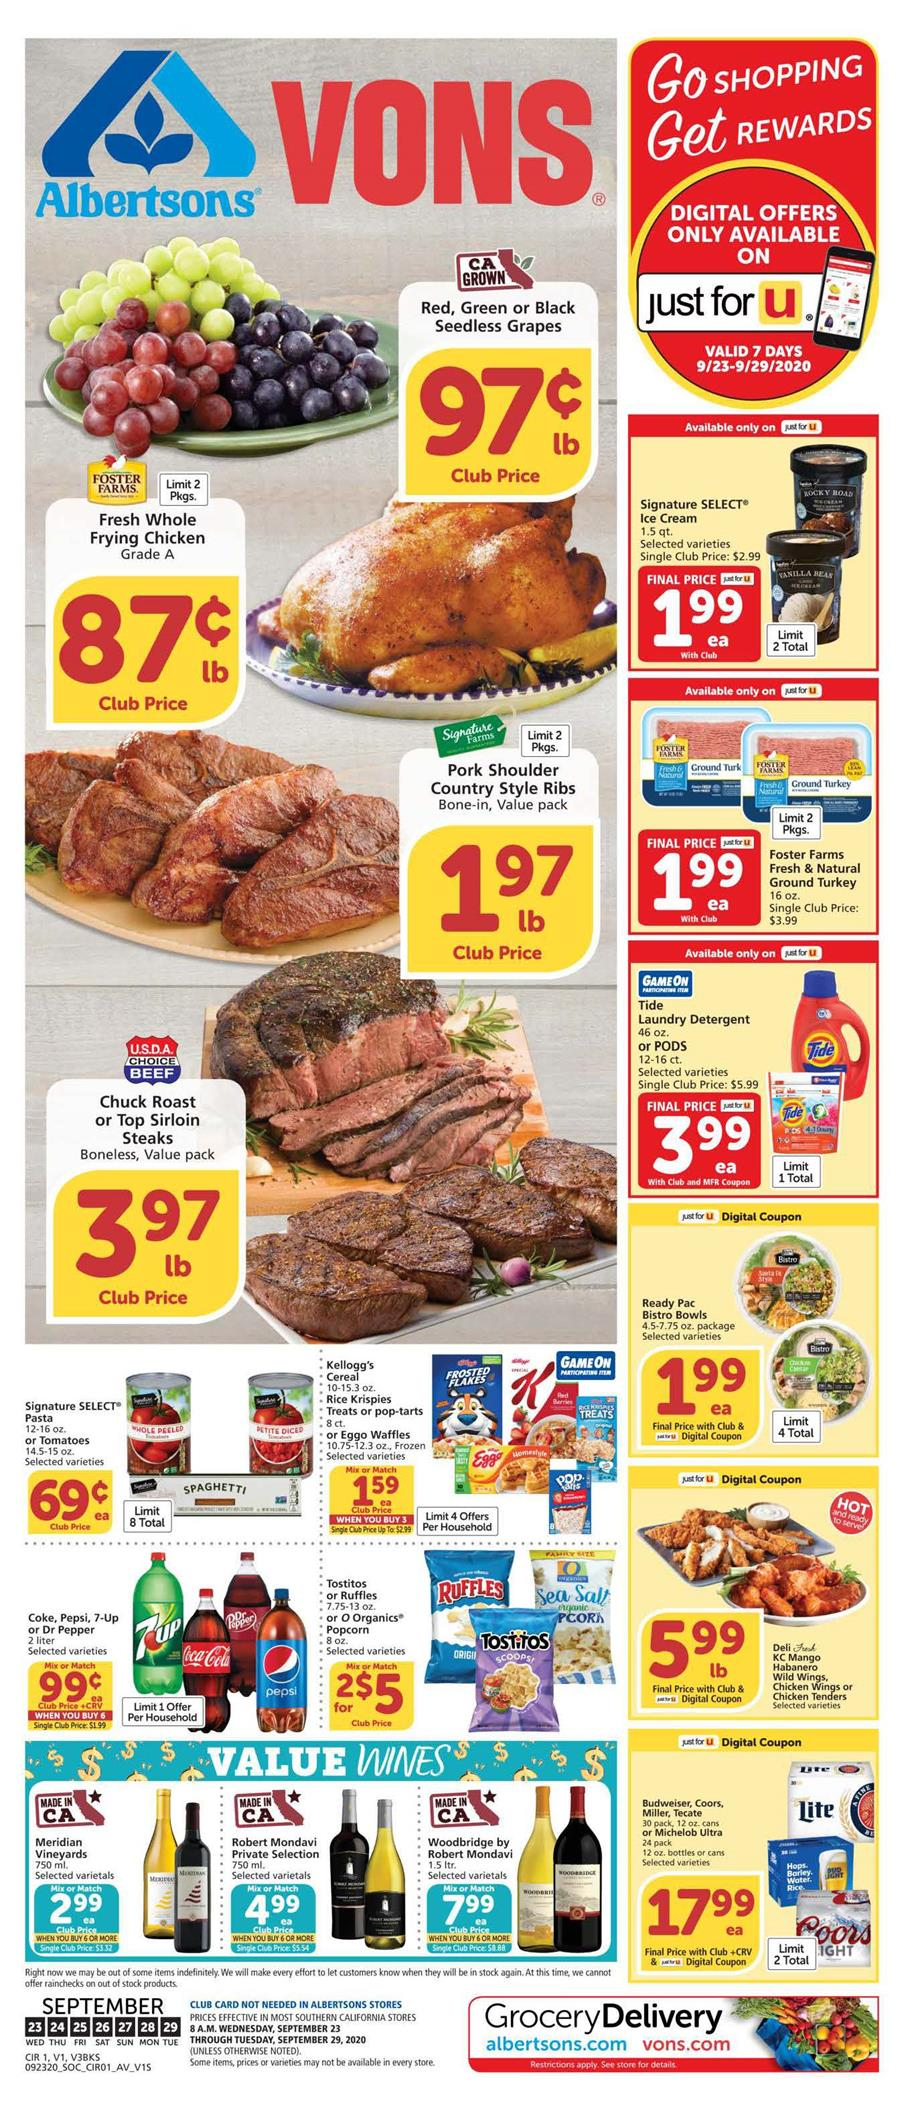 vons final september ad valid from sep 23 29 2020